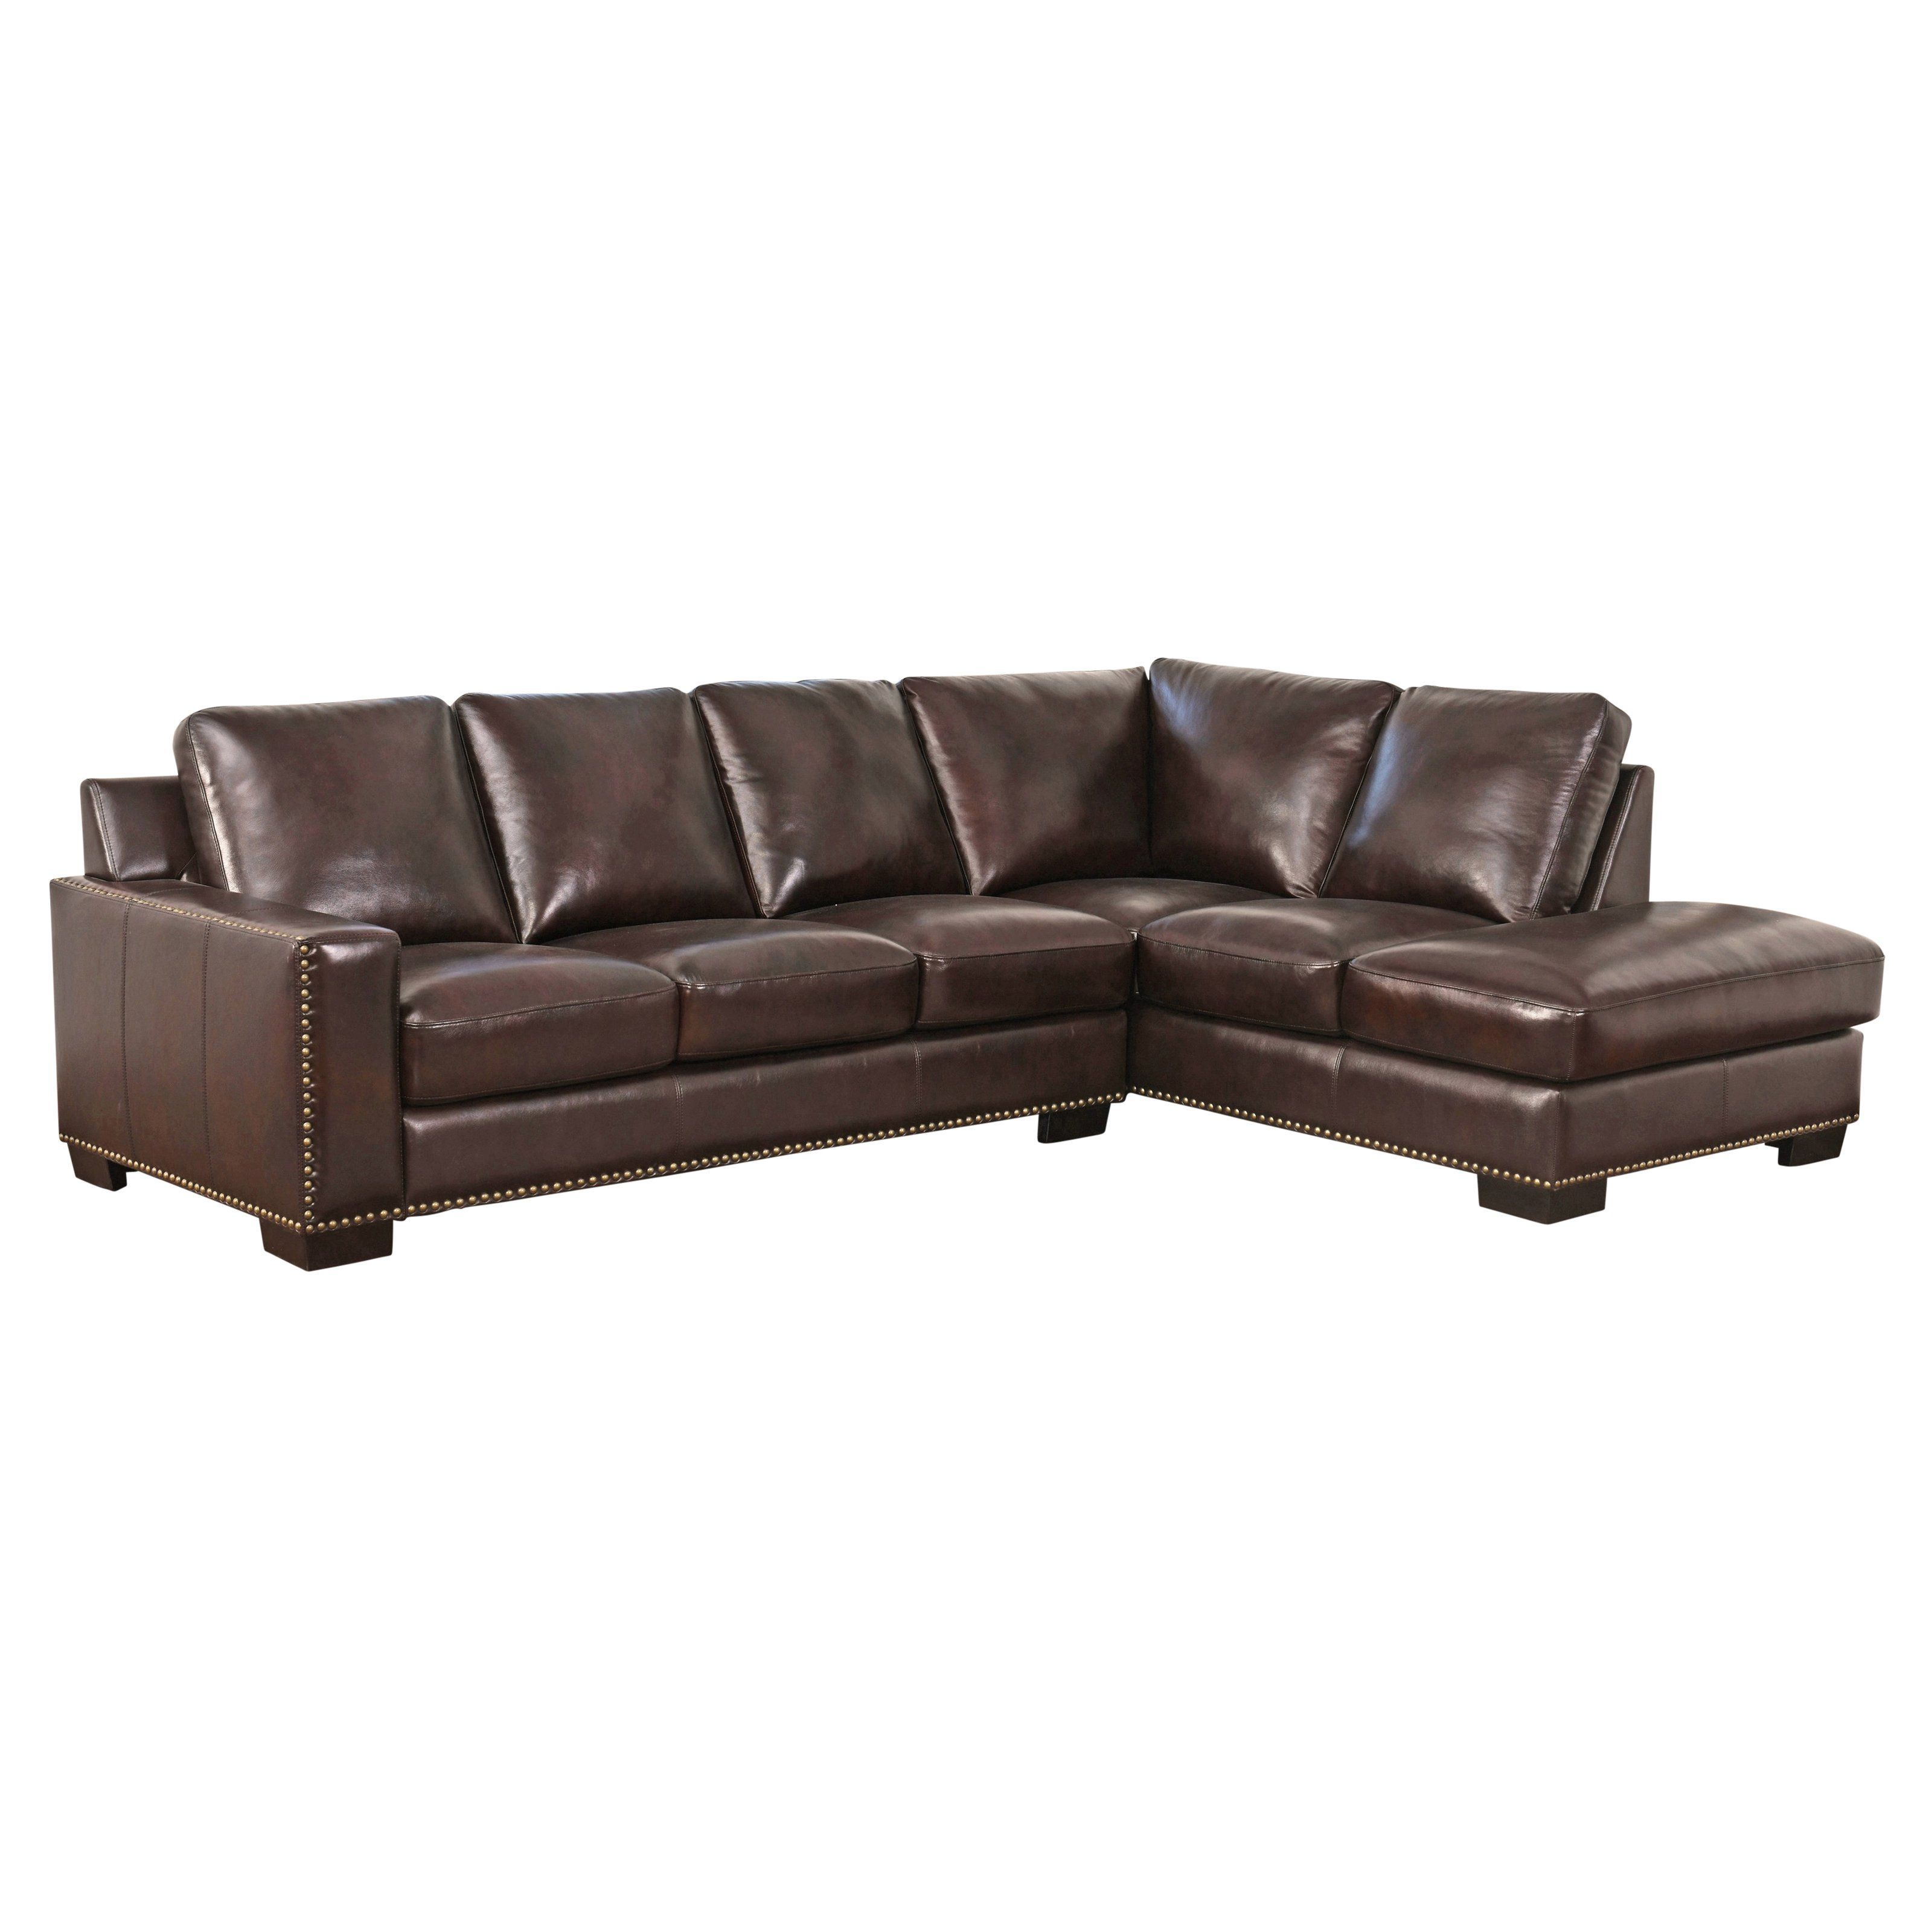 This Top Grain Leather Sectional Is Made To Anchor Any Living E With Style Chocolate Brown Constructed Our Luxury Cloud